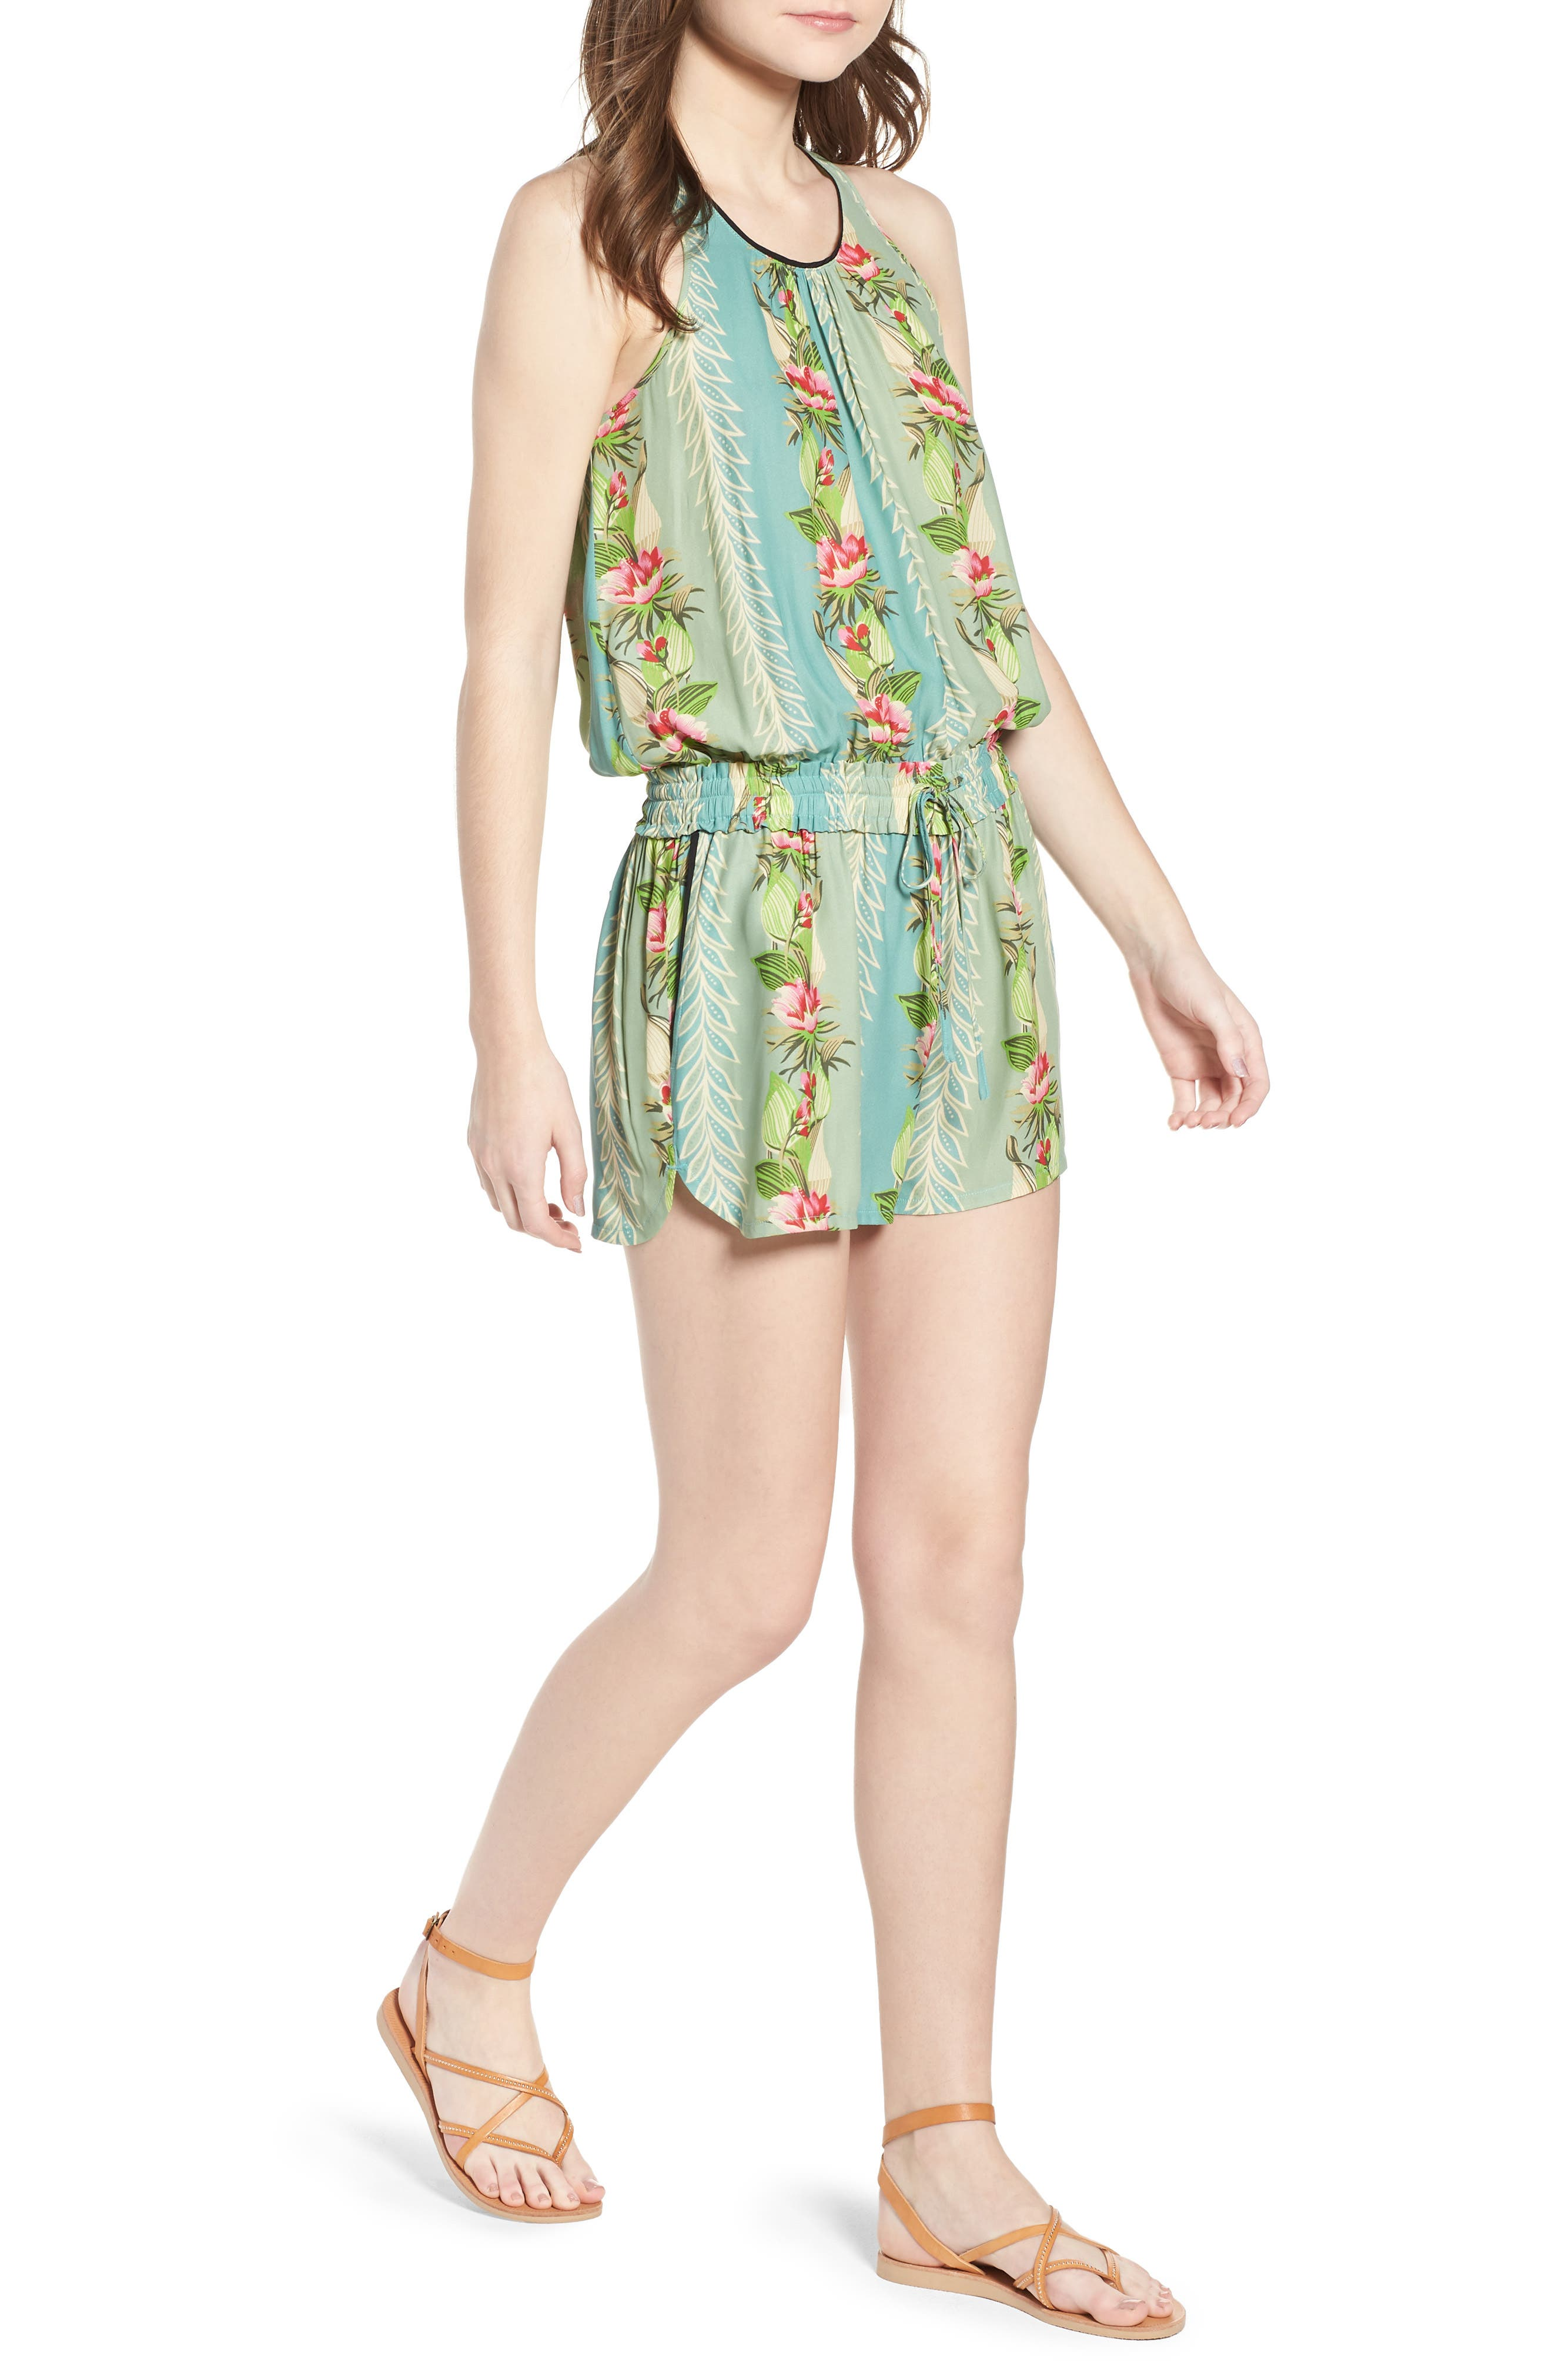 SCOTCH & SODA,                             Print All in One Romper,                             Main thumbnail 1, color,                             440